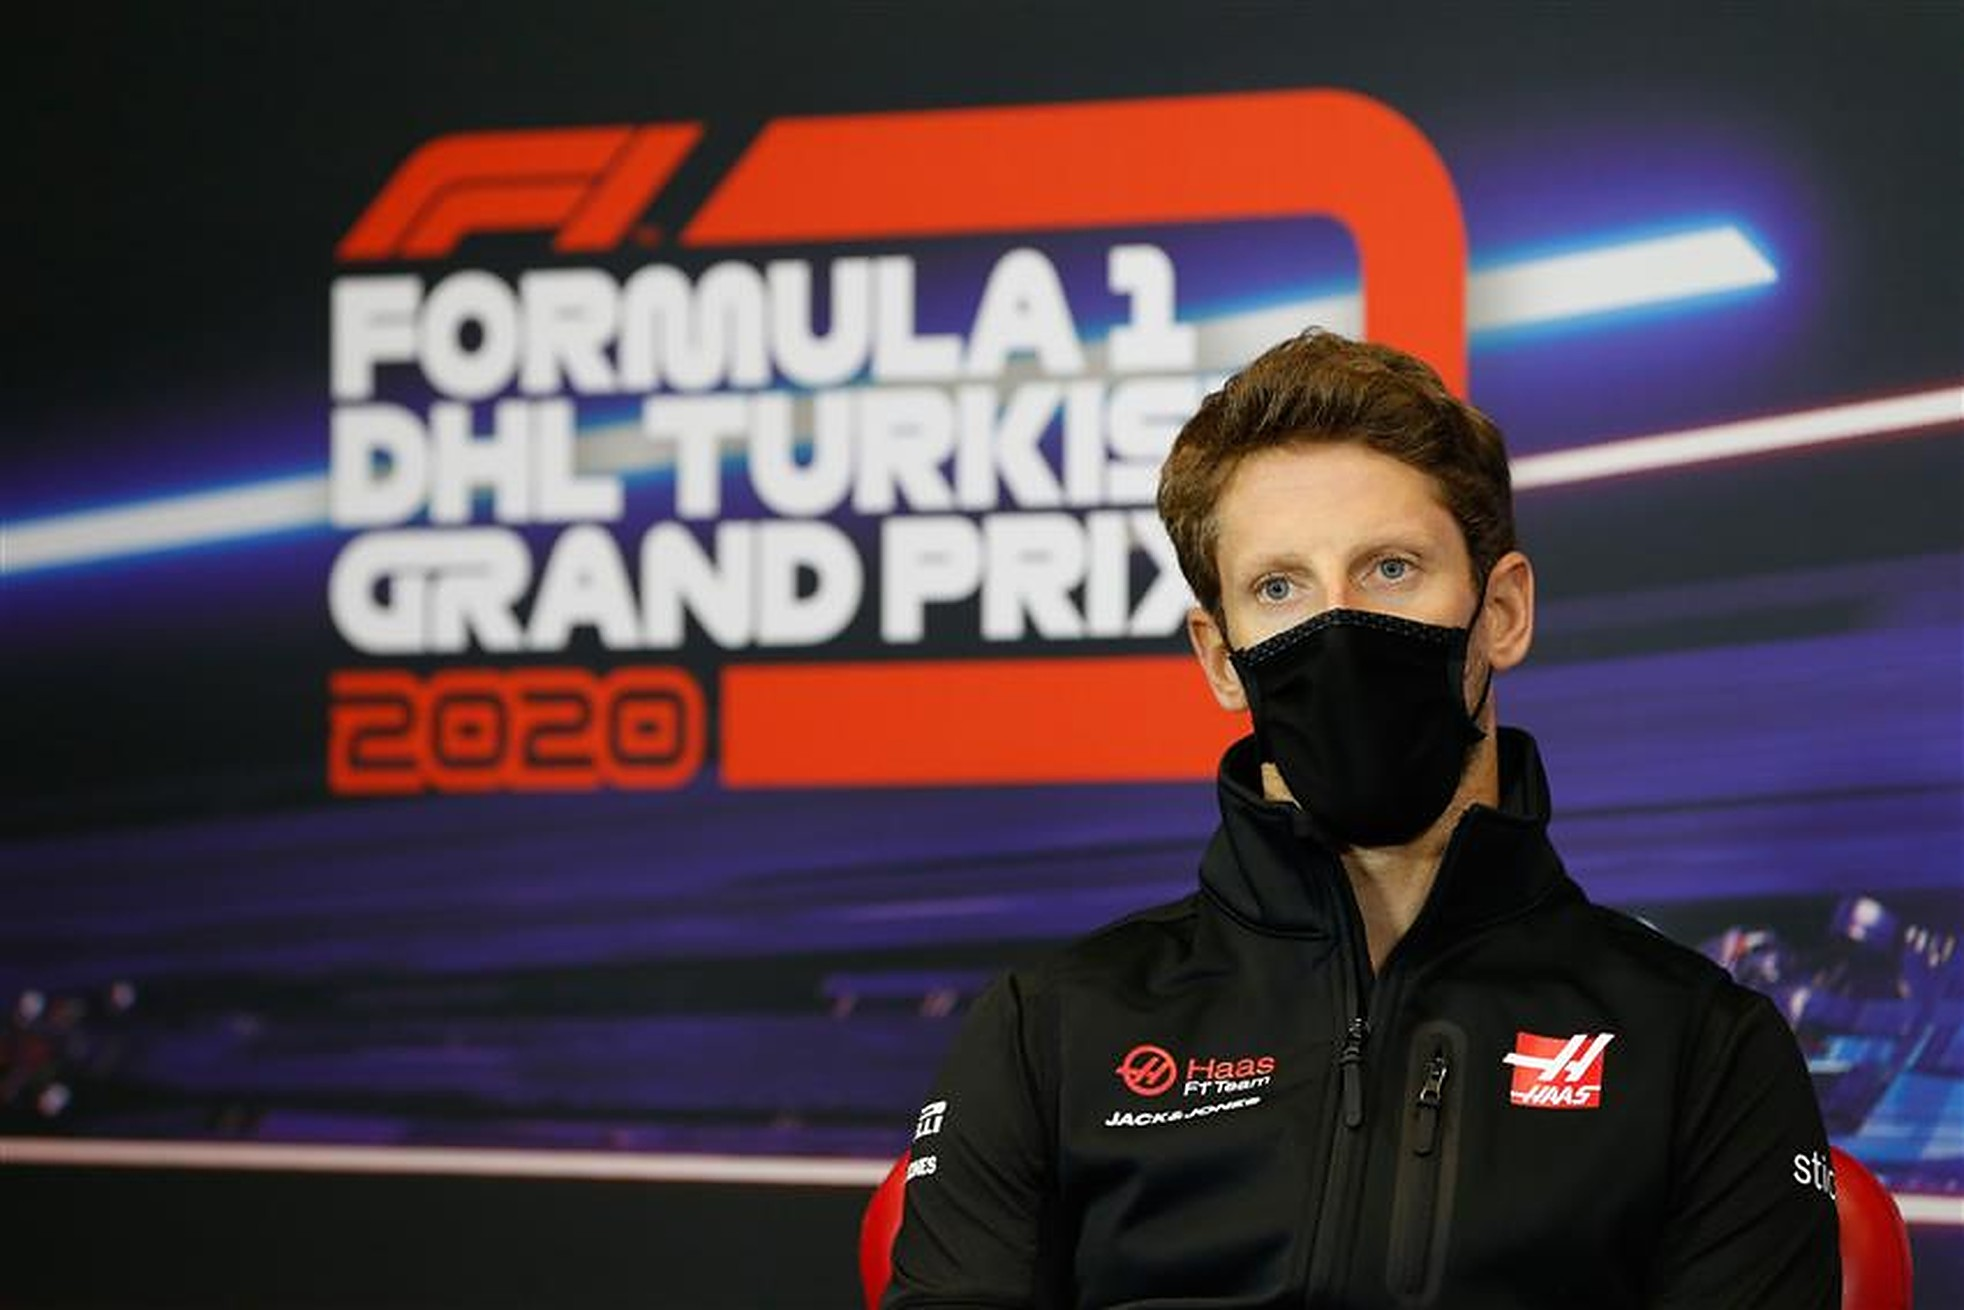 Romain Grosjean to race in Indycar and WEC after F1 - Formula1news.co.uk